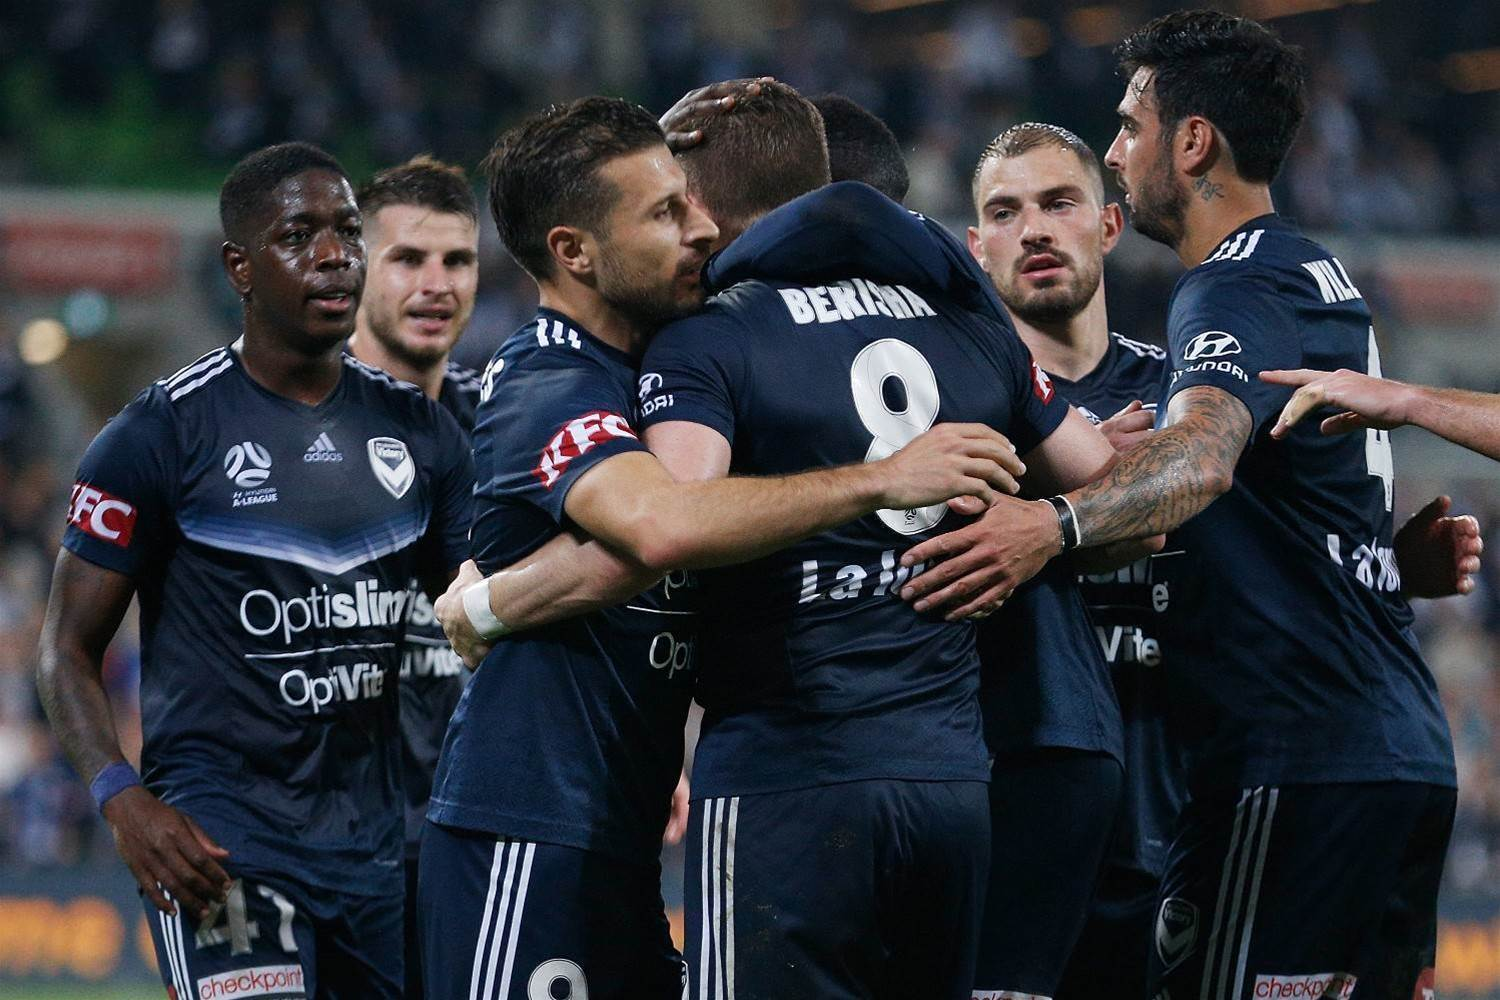 Melbourne Victory vs Adelaide United: Player Ratings